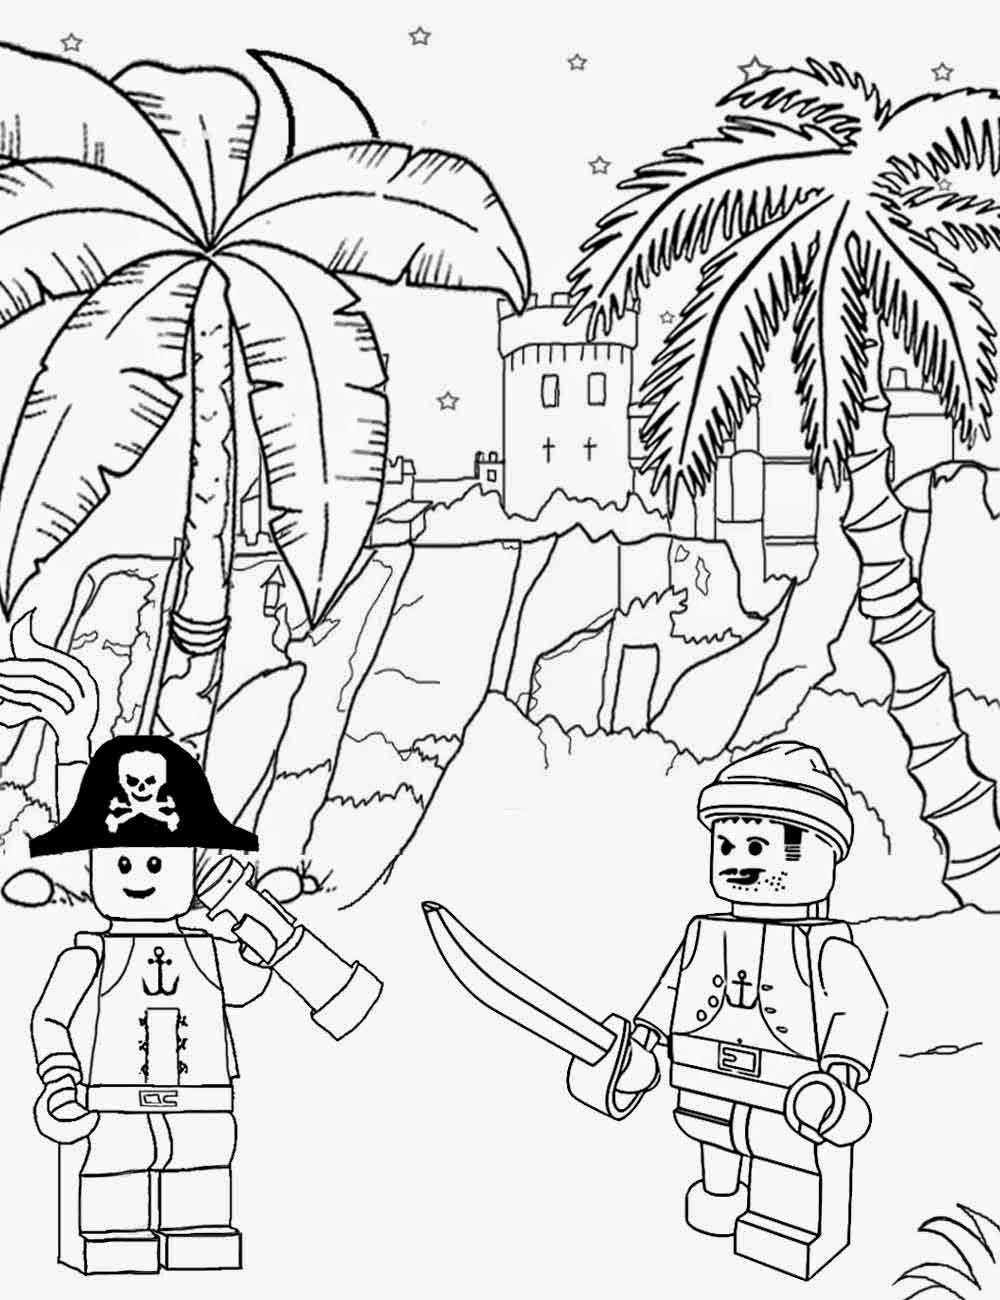 lego color sheet free coloring pages printable pictures to color kids color lego sheet